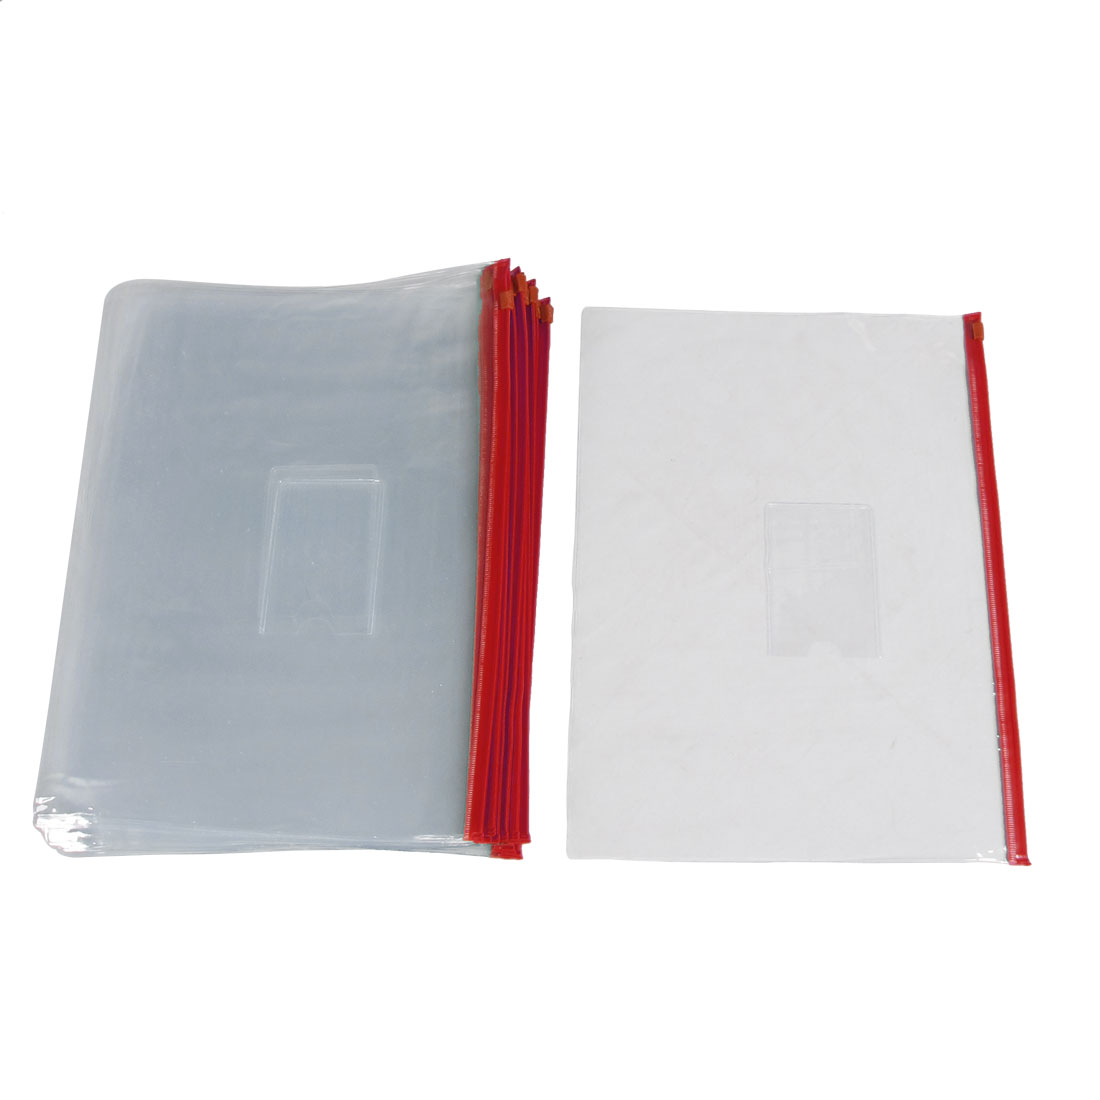 a5e8294ce591 Unique Bargains Classification Folders - Sears